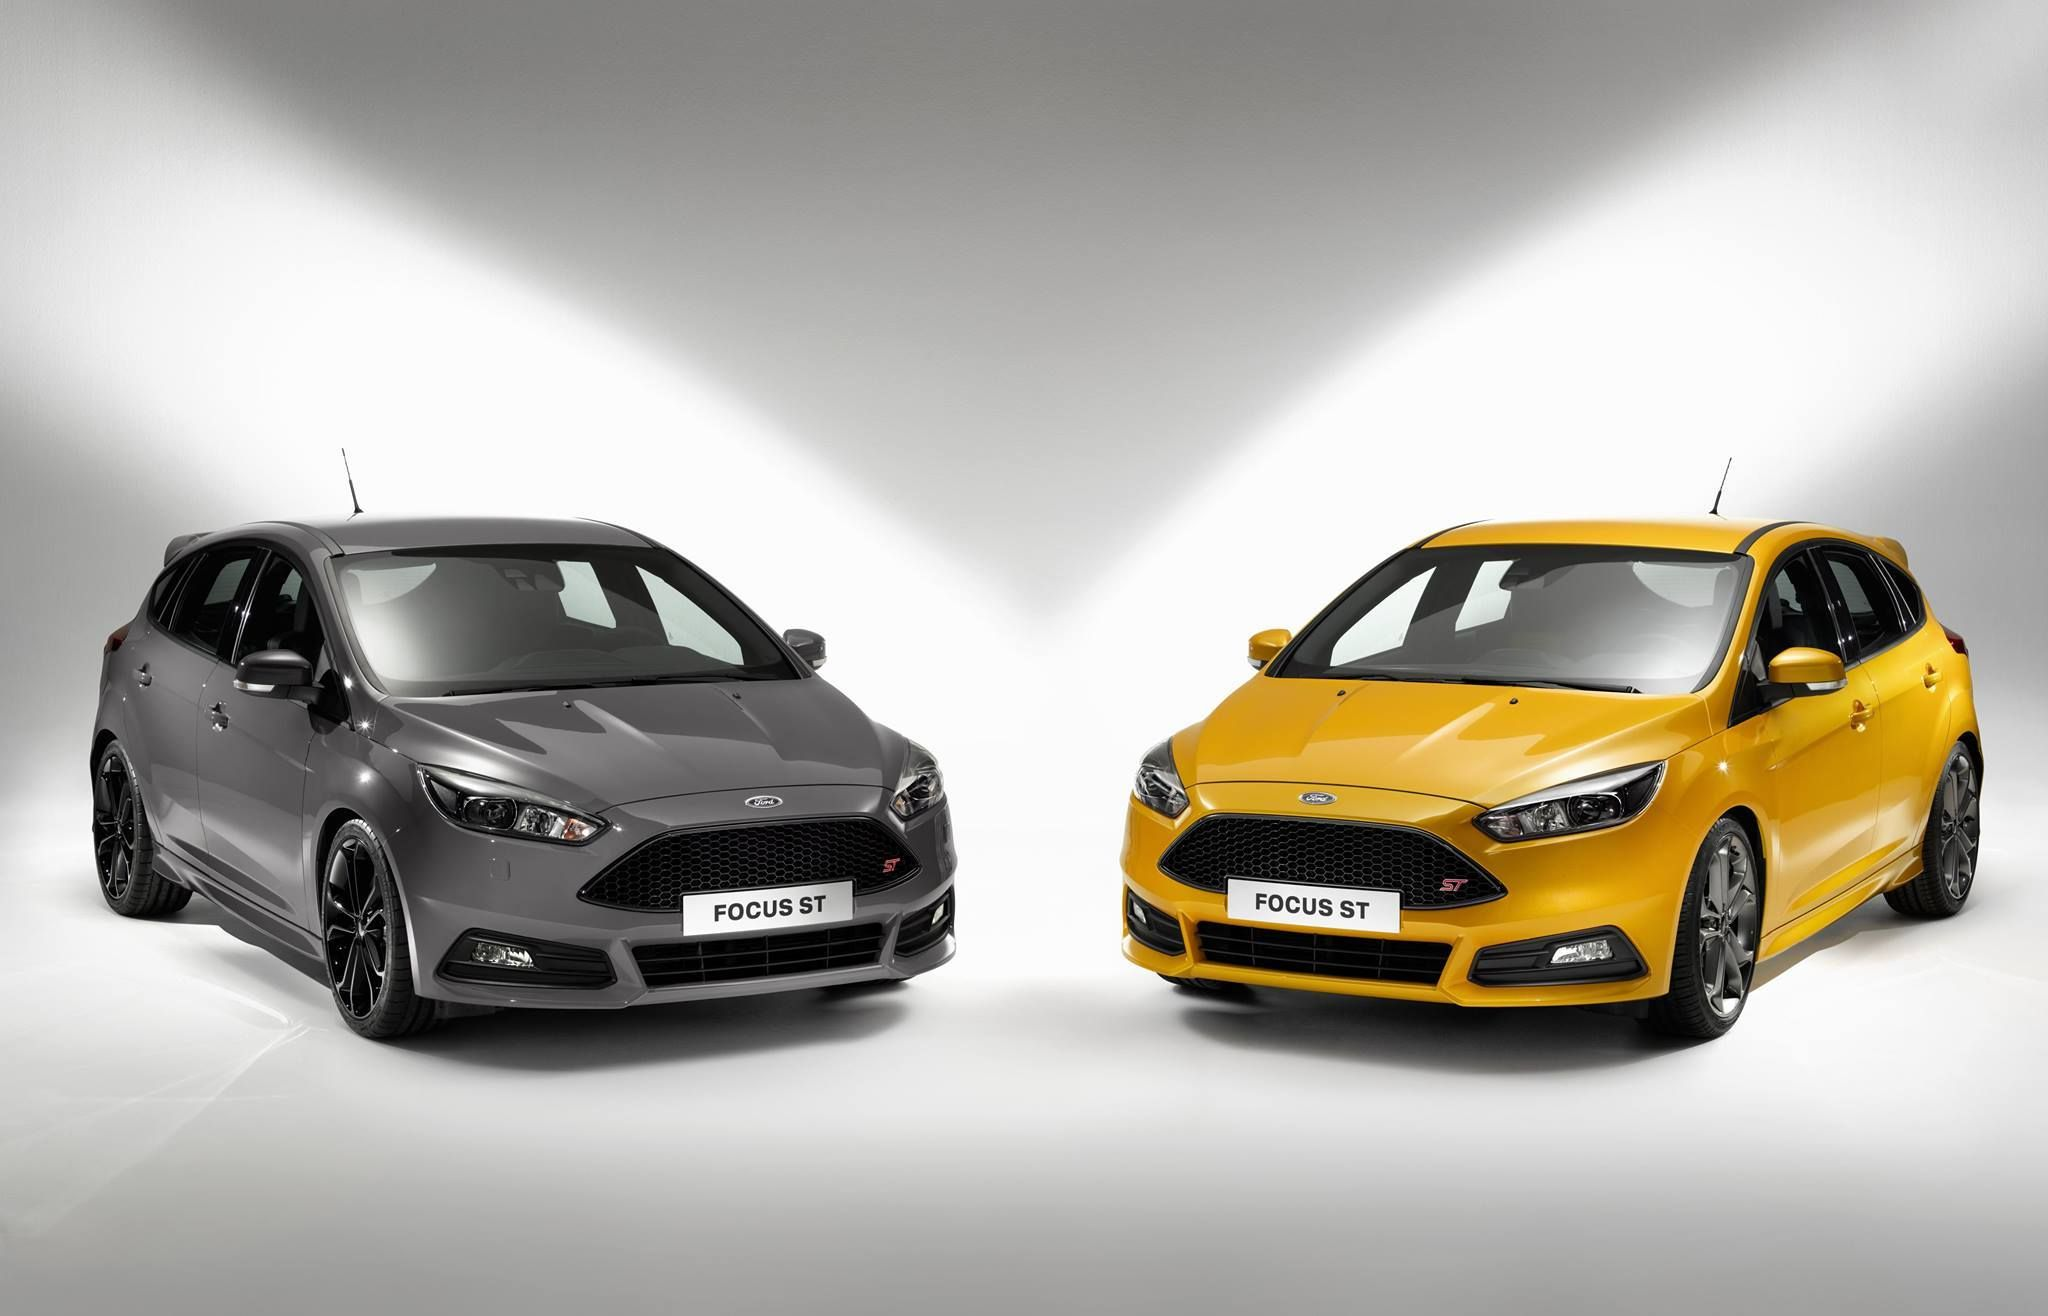 The All New Ford Focus St 2015 Model Www Swanson Ford Co Uk